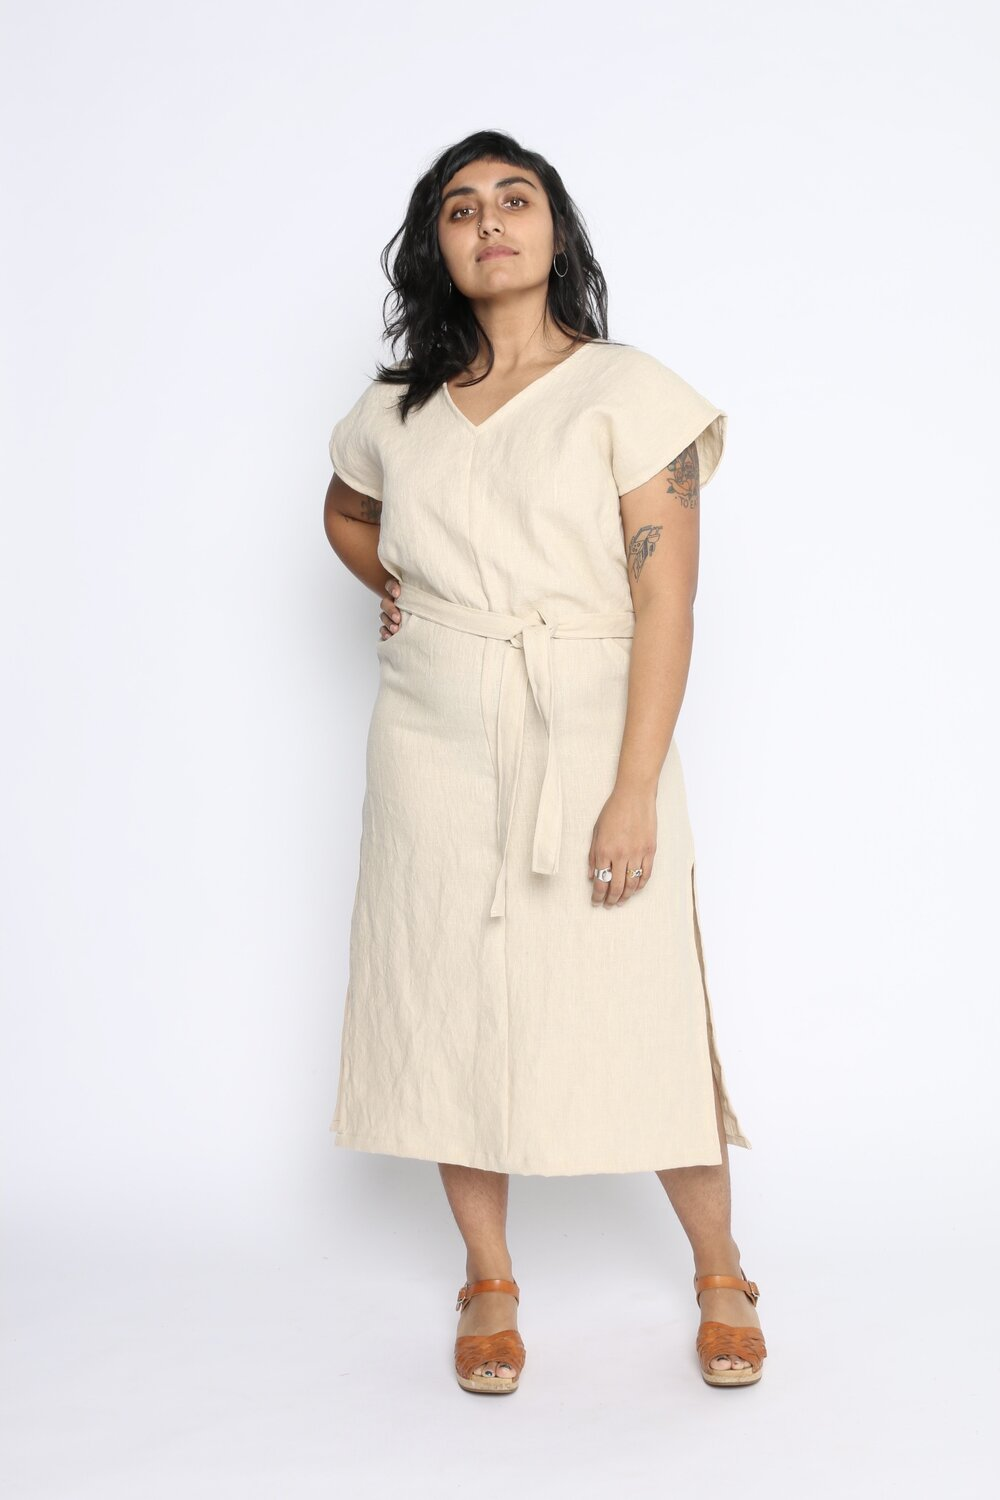 Conscious Clothing Mural Midi Dress with Belt - Cream Linen